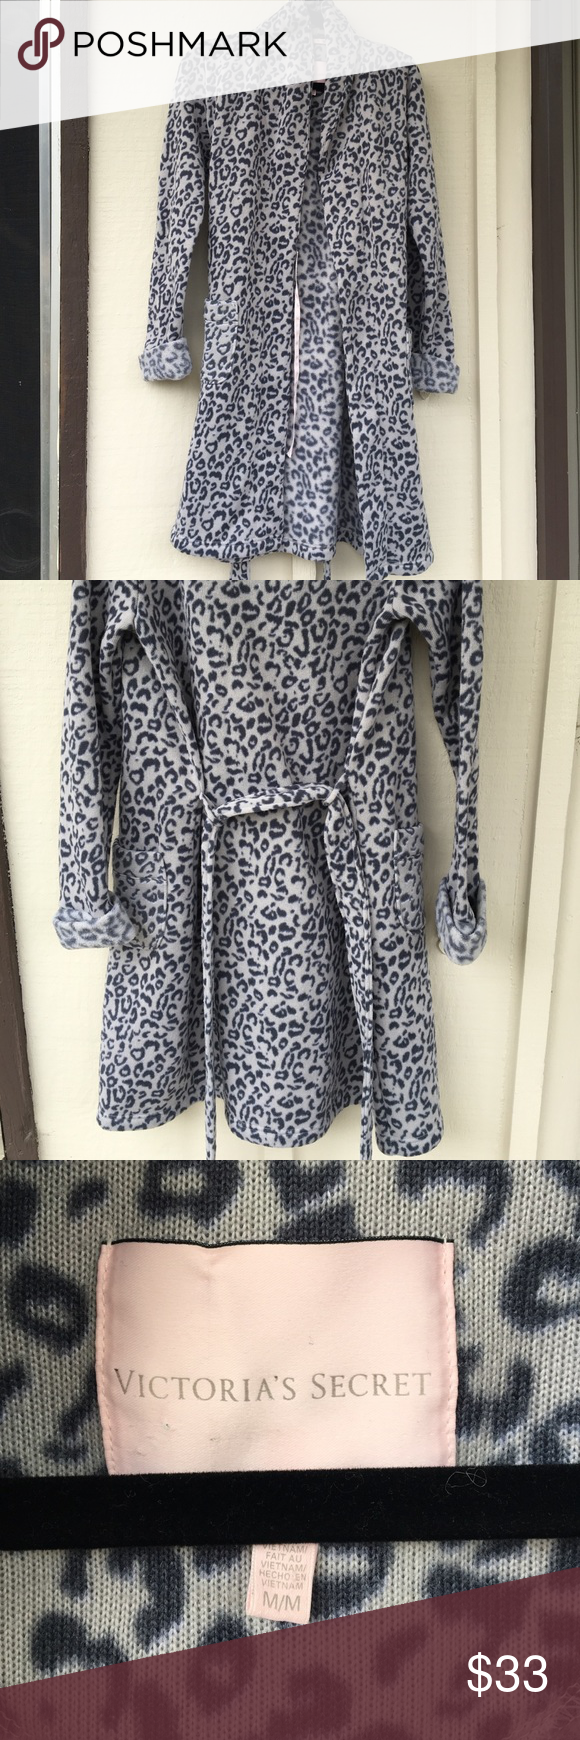 Victoria Secret Cozy Cheetah robe NWOT!! Such a cozy robe! Nice and warm for those cold mornings! Cute cheetah print! Selling for cheap! Victoria's Secret Intimates & Sleepwear Robes